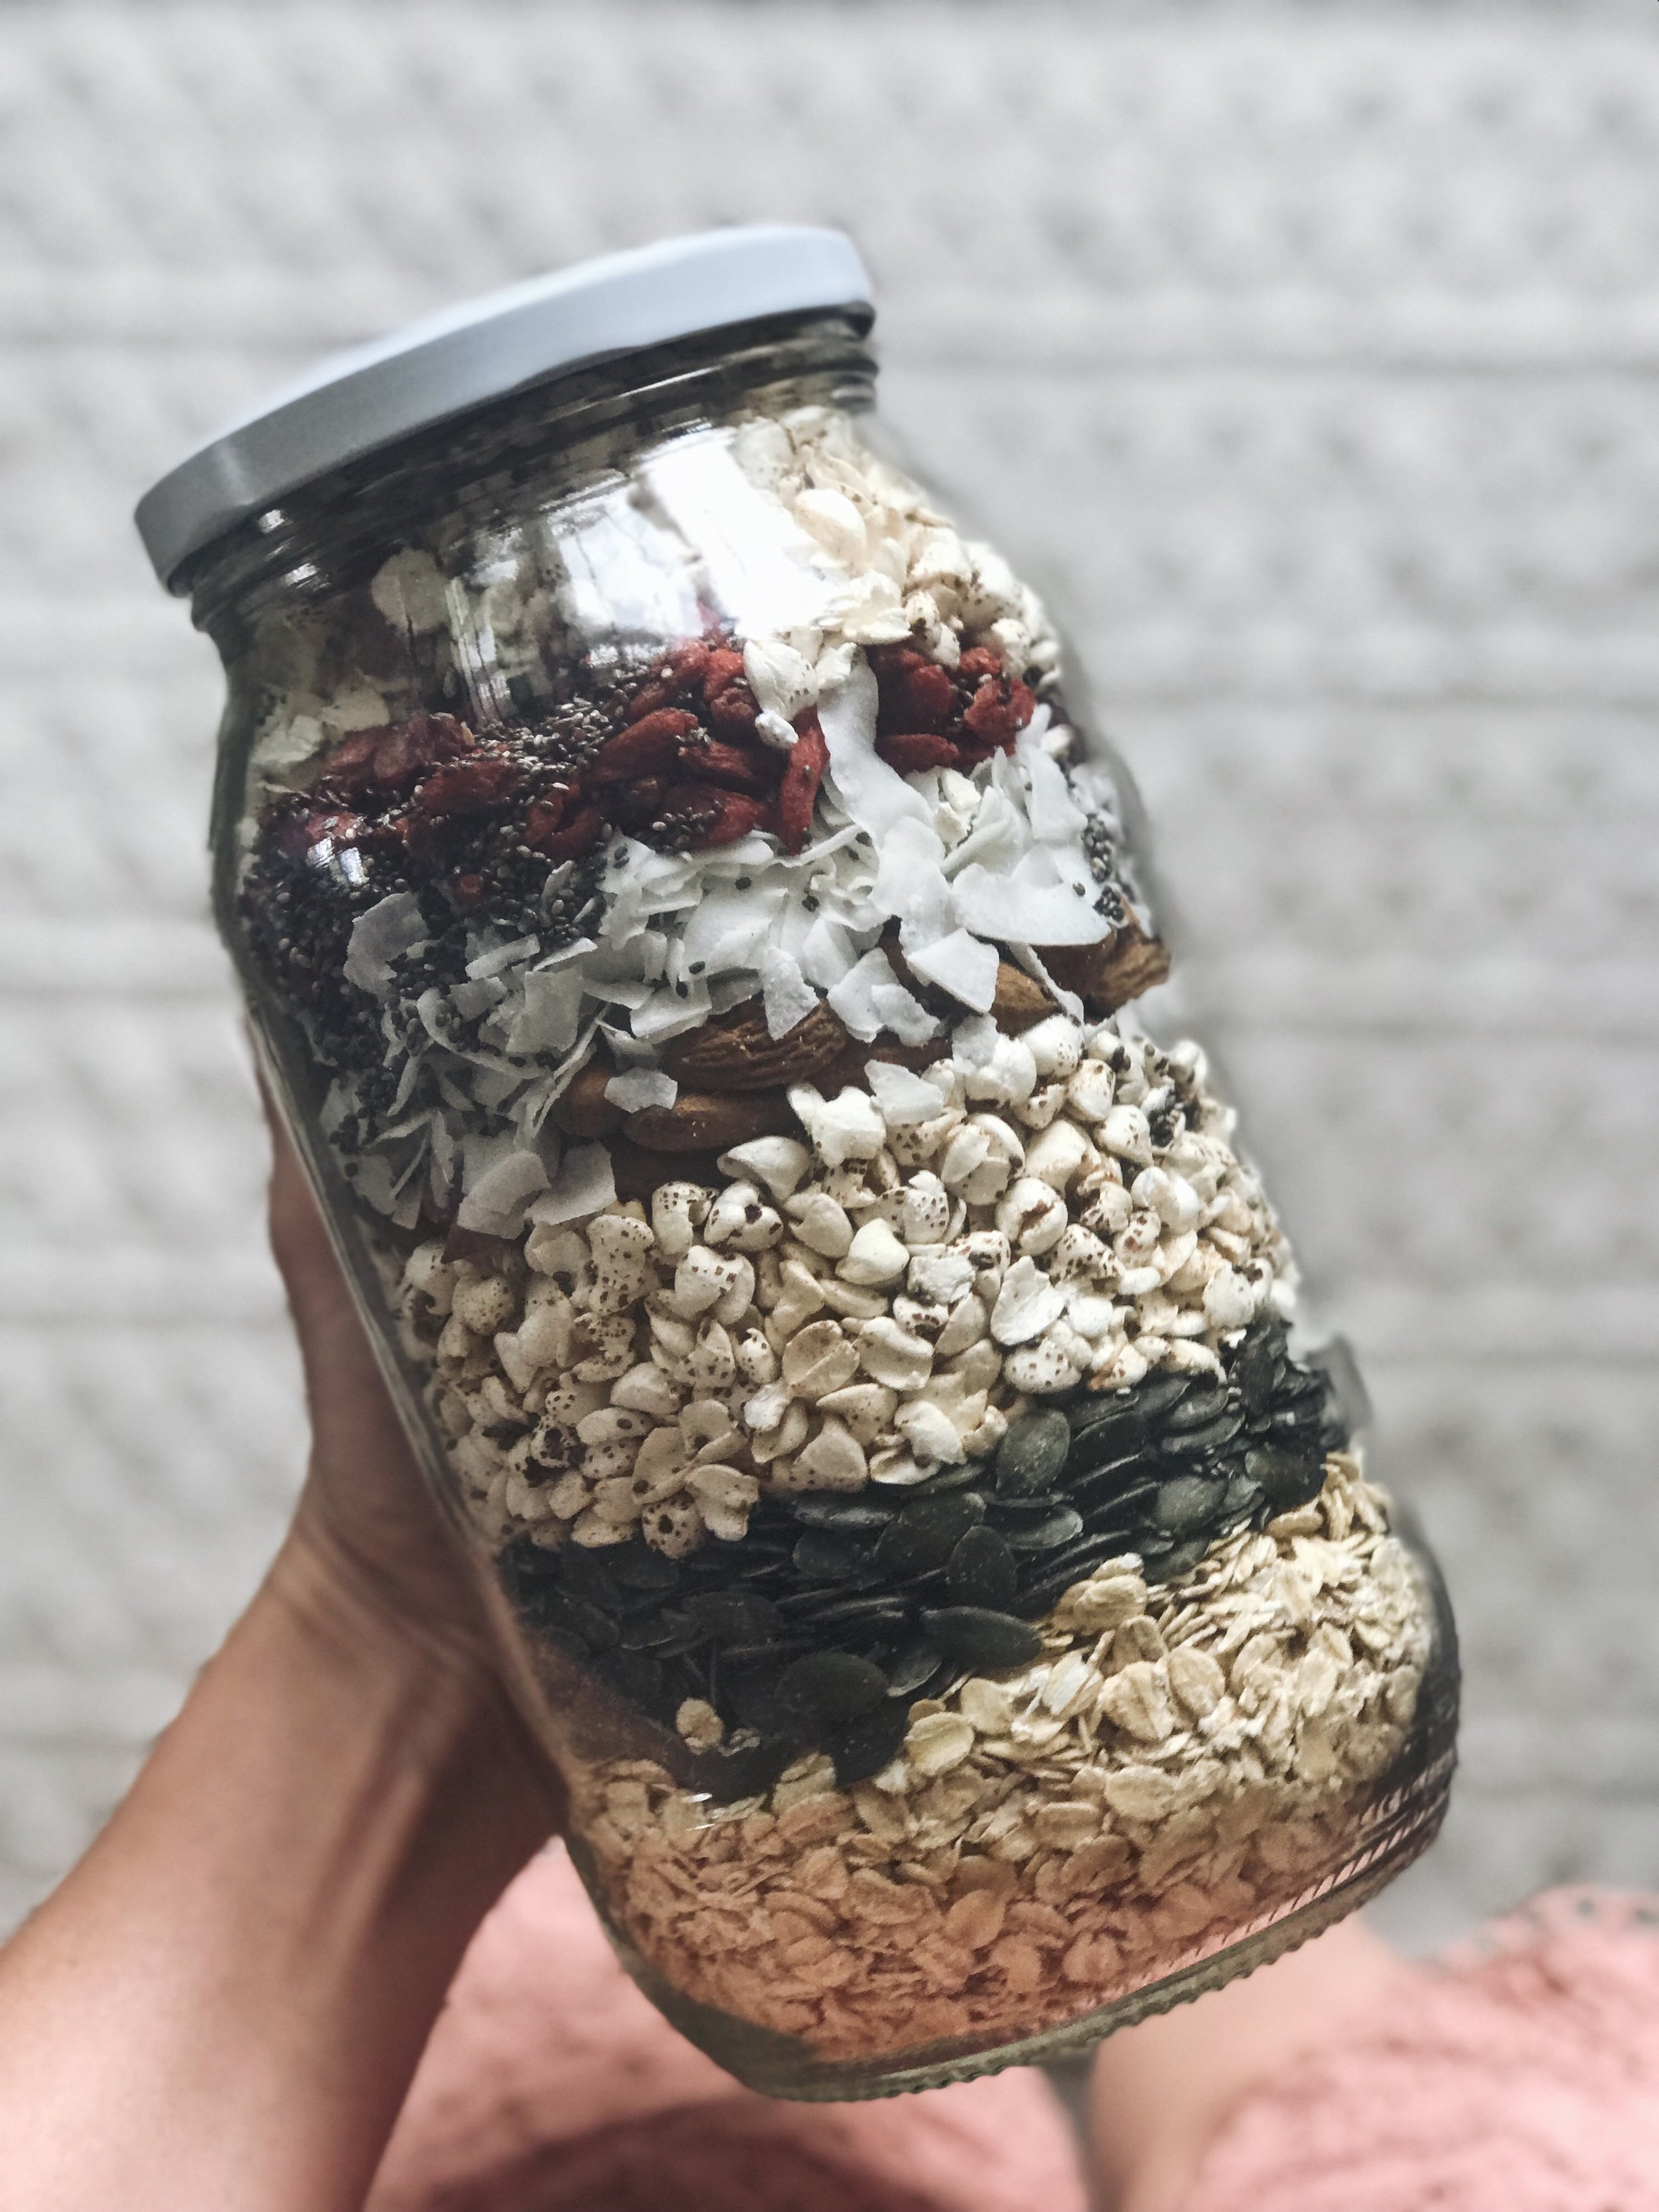 The perfect christmas gift - Layer all ingredients in a jar to make a delicious,healthy homemade christmas present.